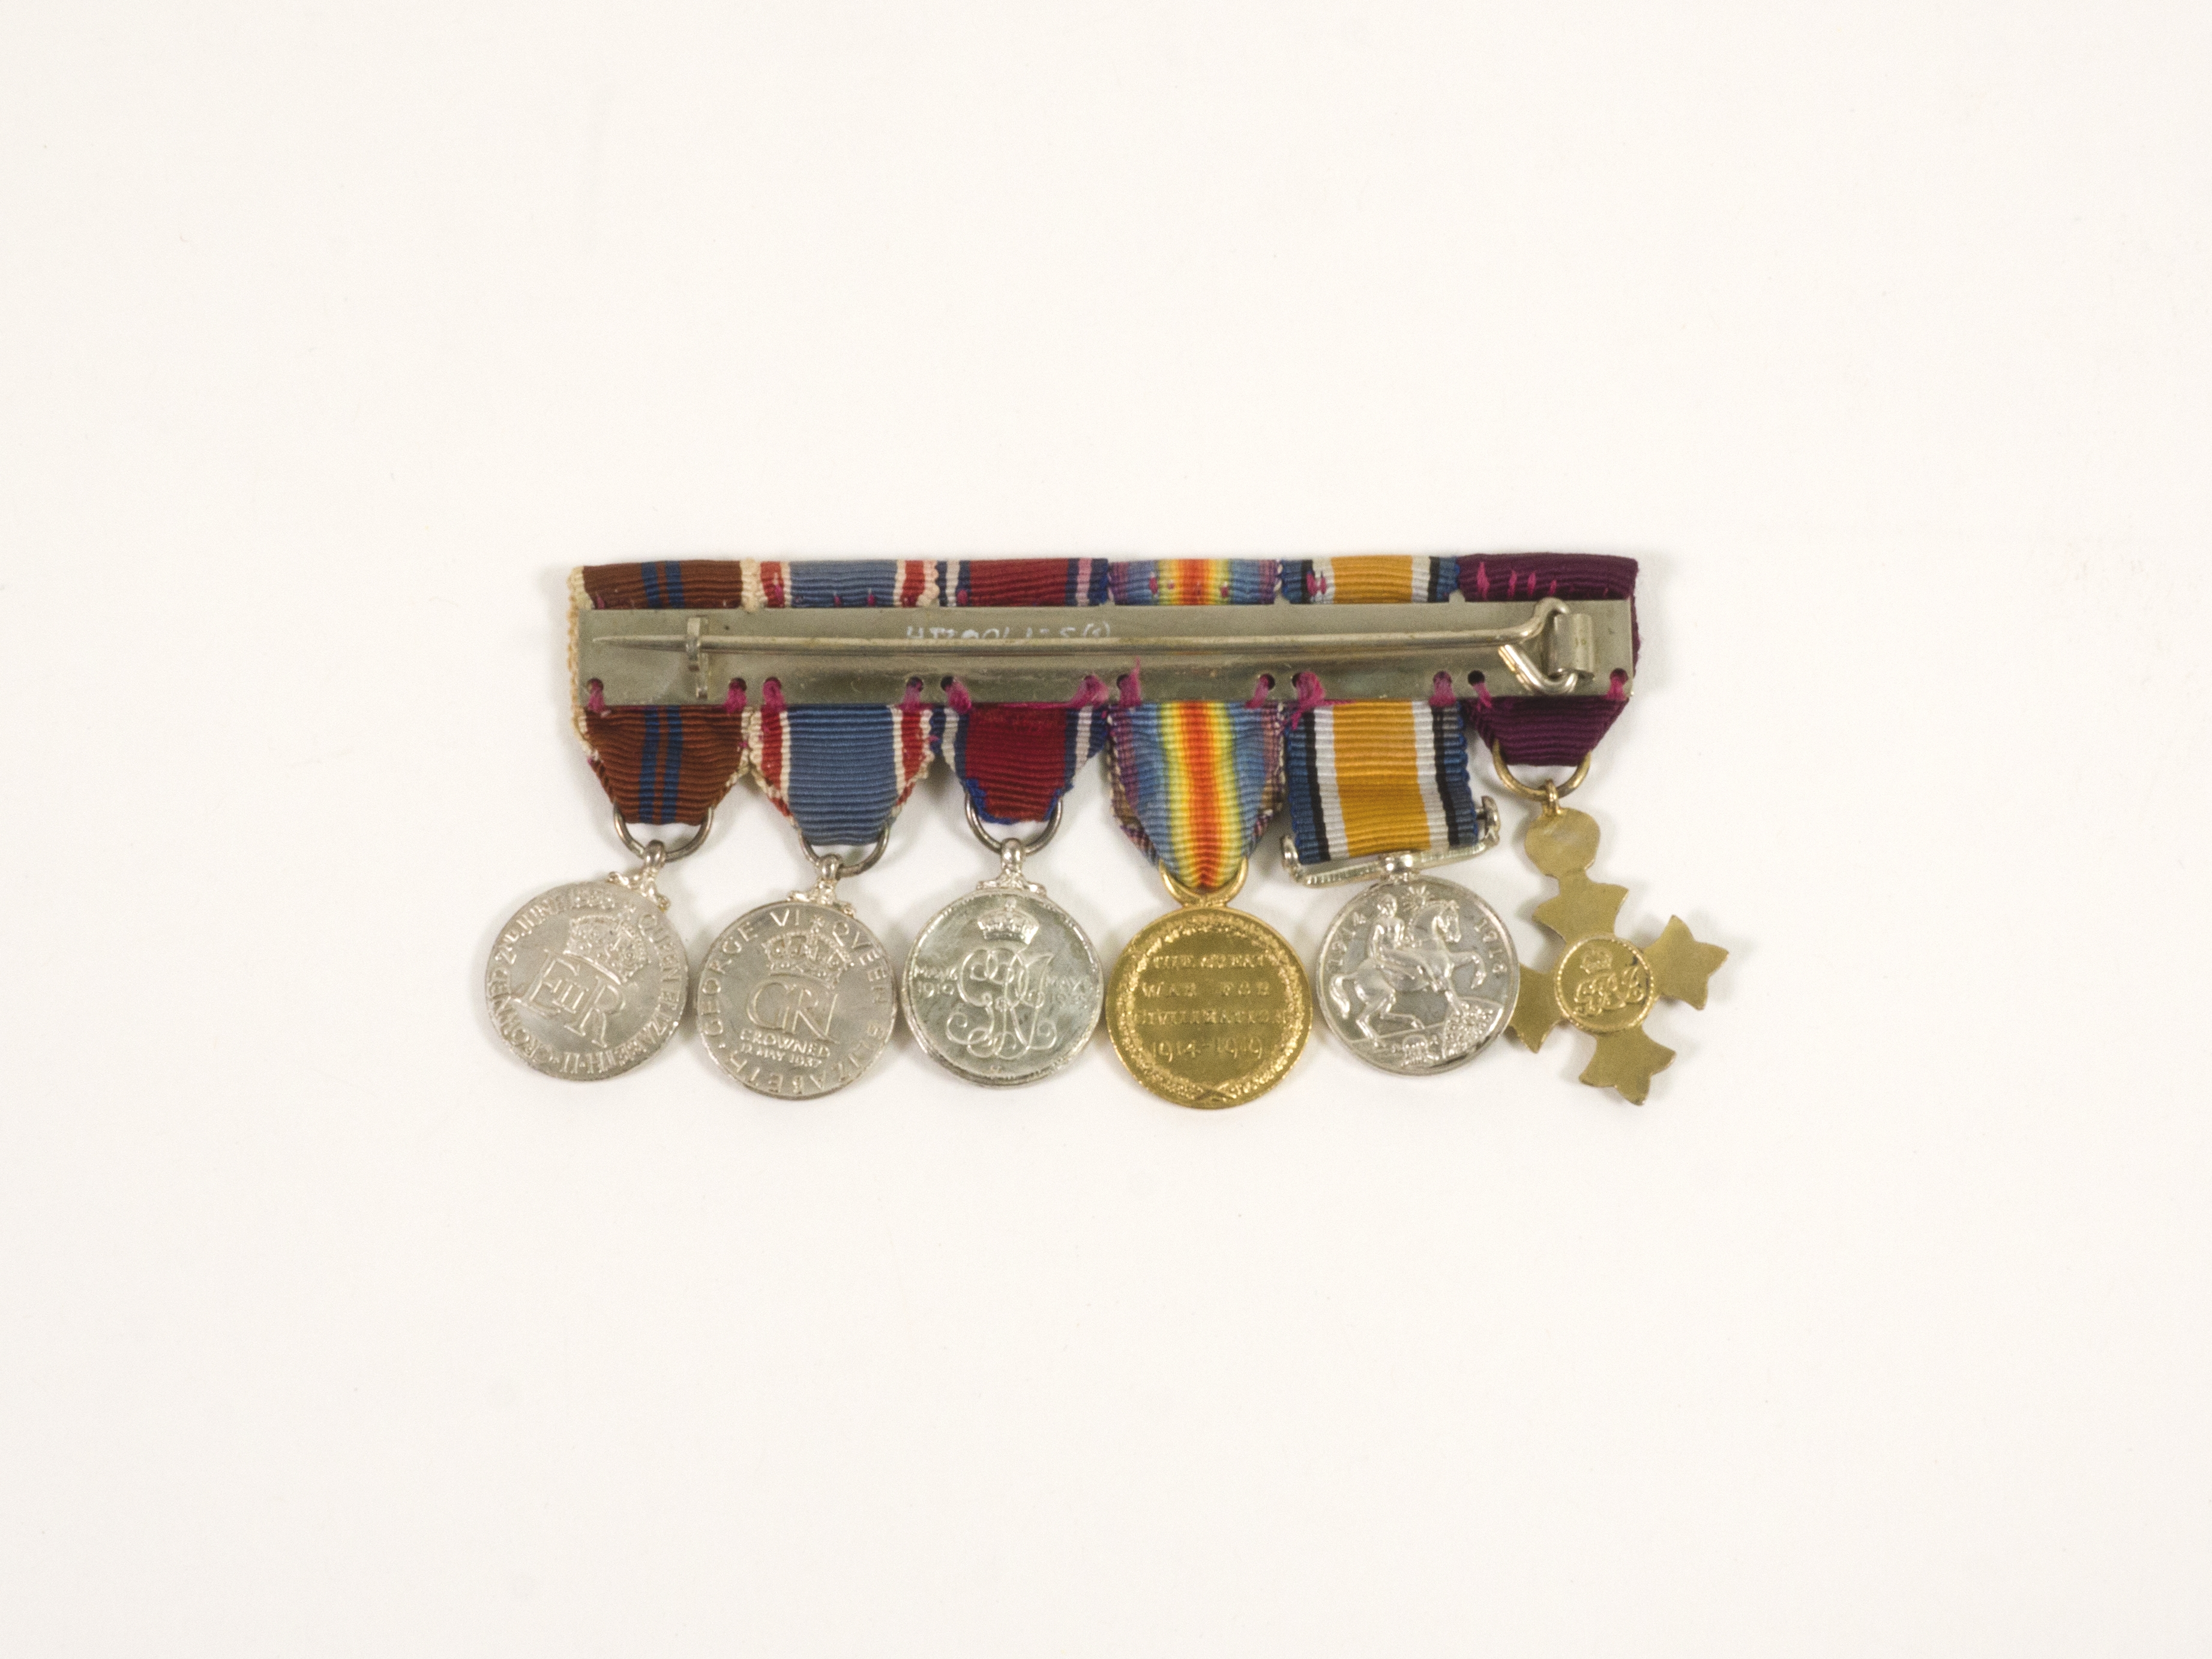 Image: six medals and ribbons aligned together and shown from the back side. Medals are attached to a metal clasp and pin to adorn on clothing. Five of the medals are circular and the sixth is shaped as a cross with a circular middle.